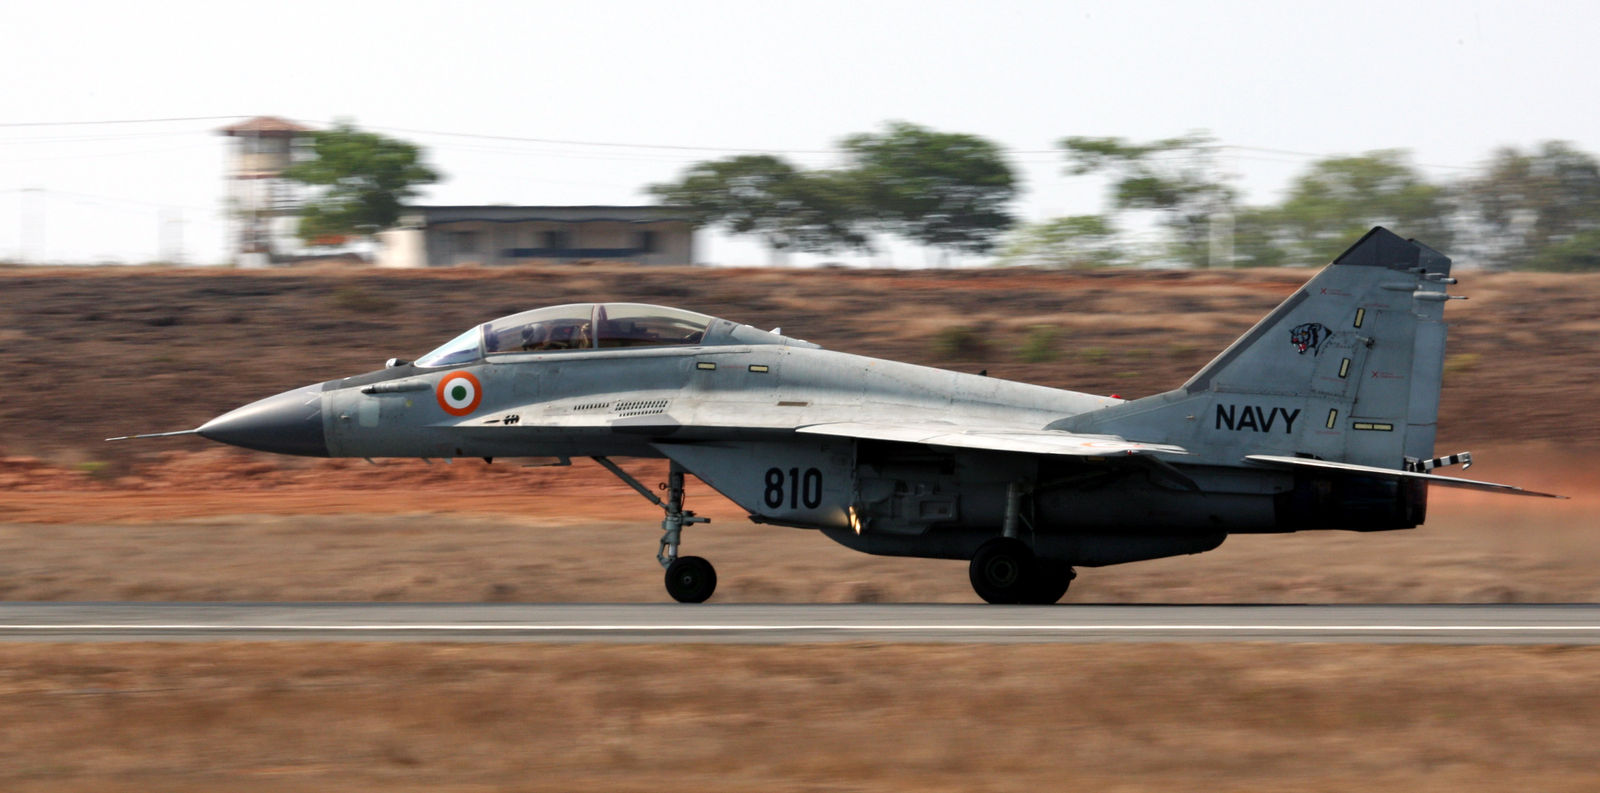 MiG-29K (IN 810) taking off